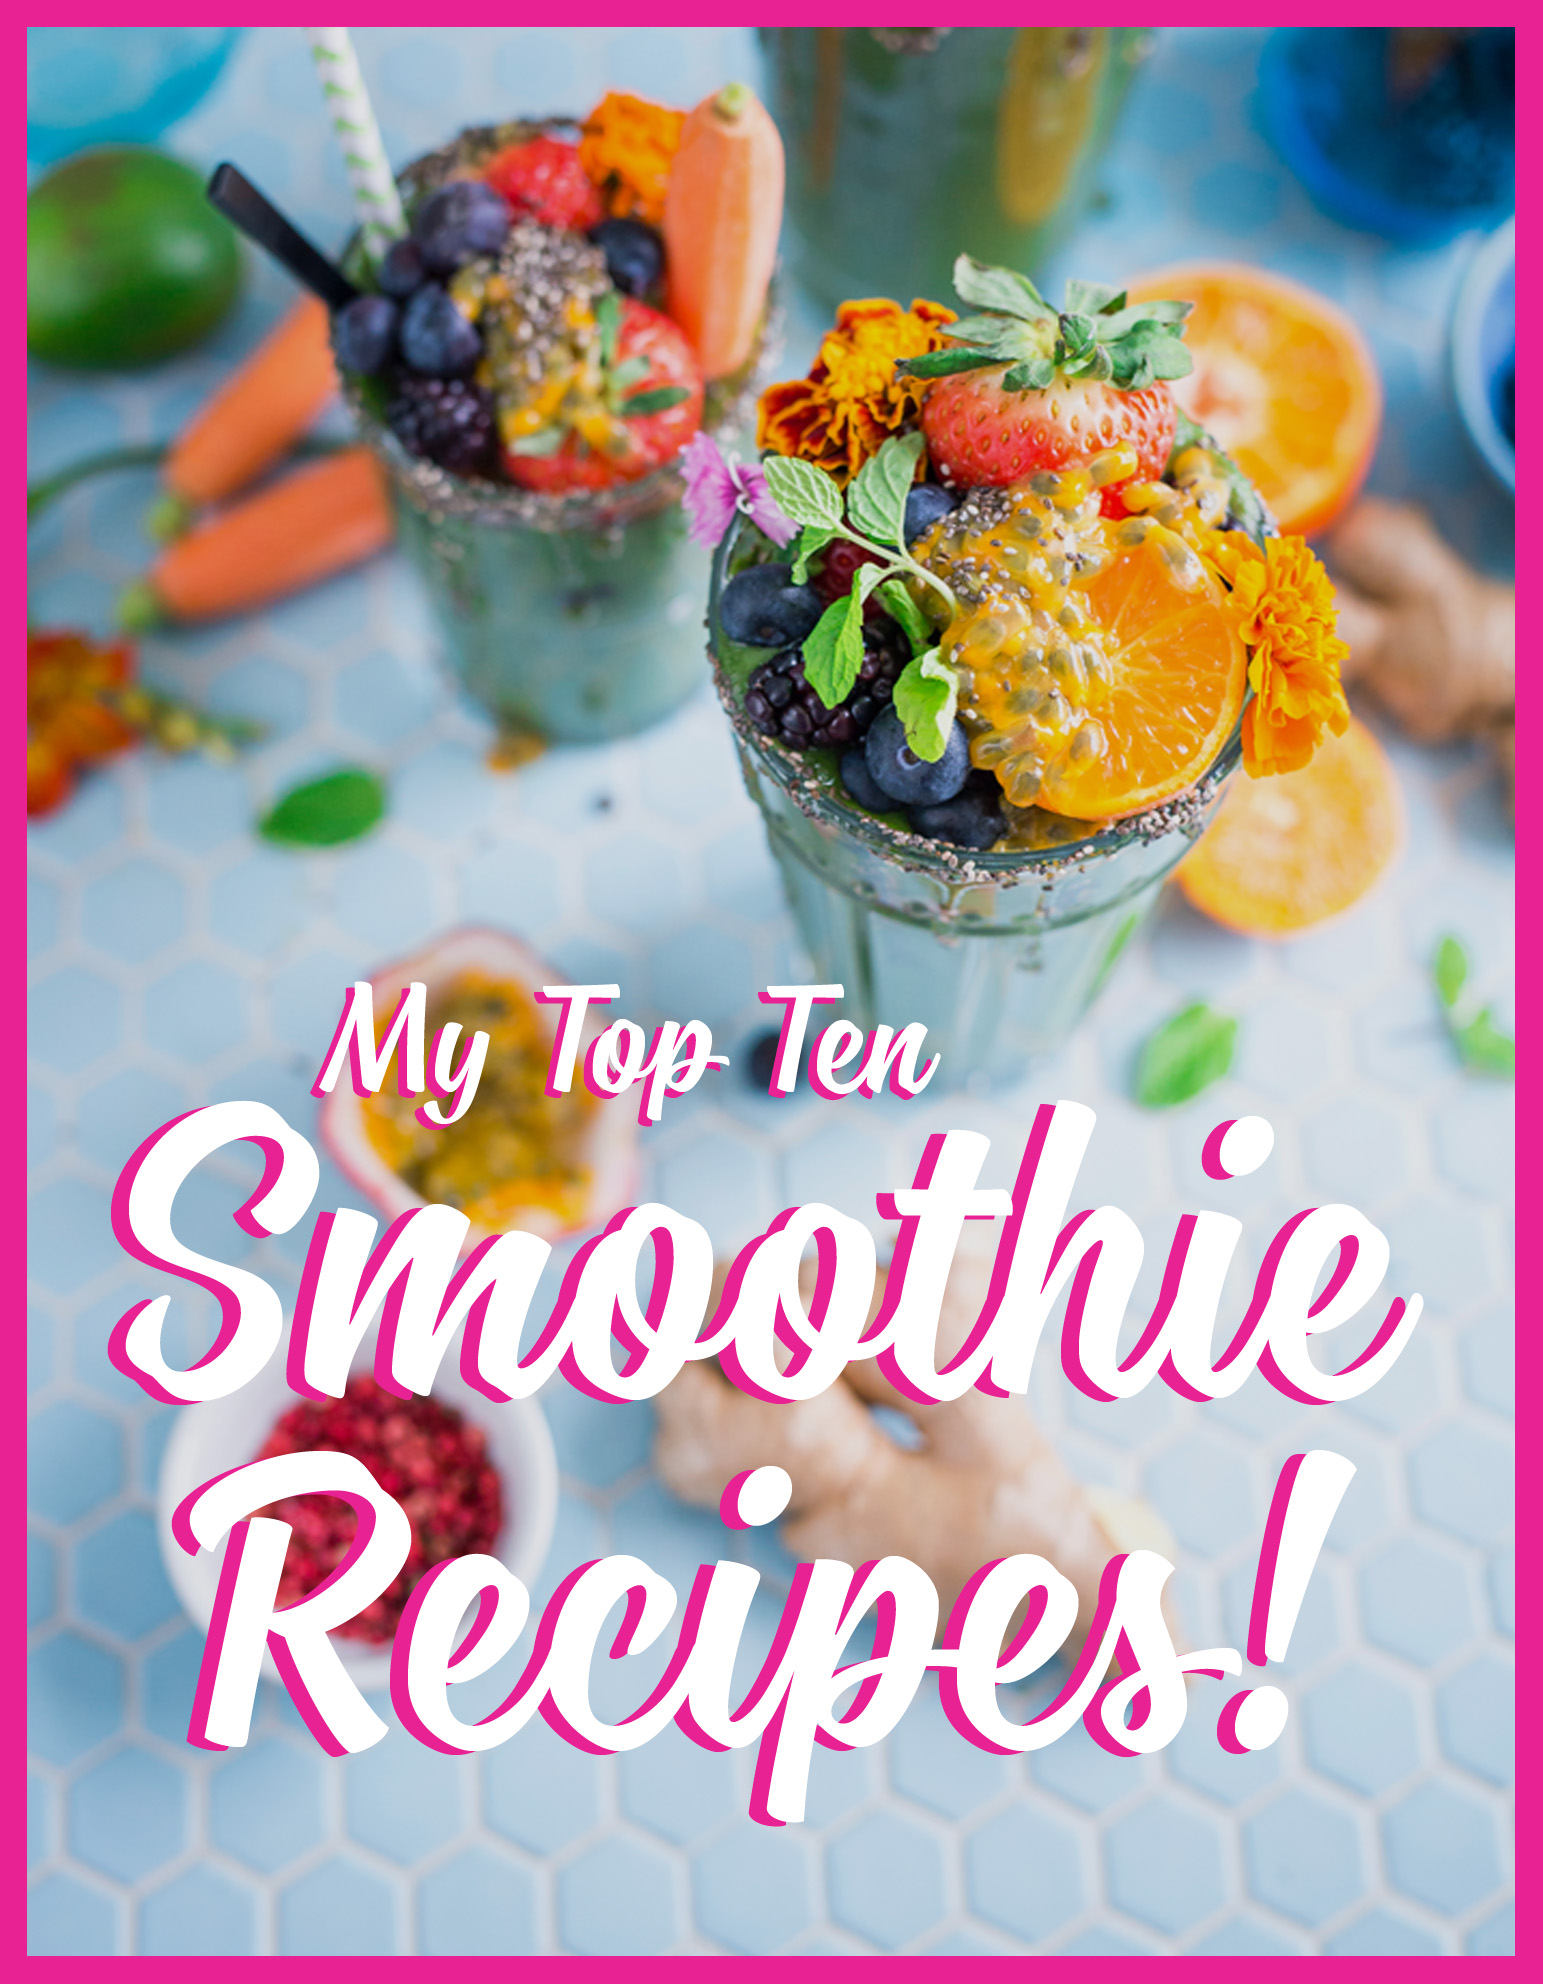 Julia Jackson - My Top 10 Smoothie Recipes